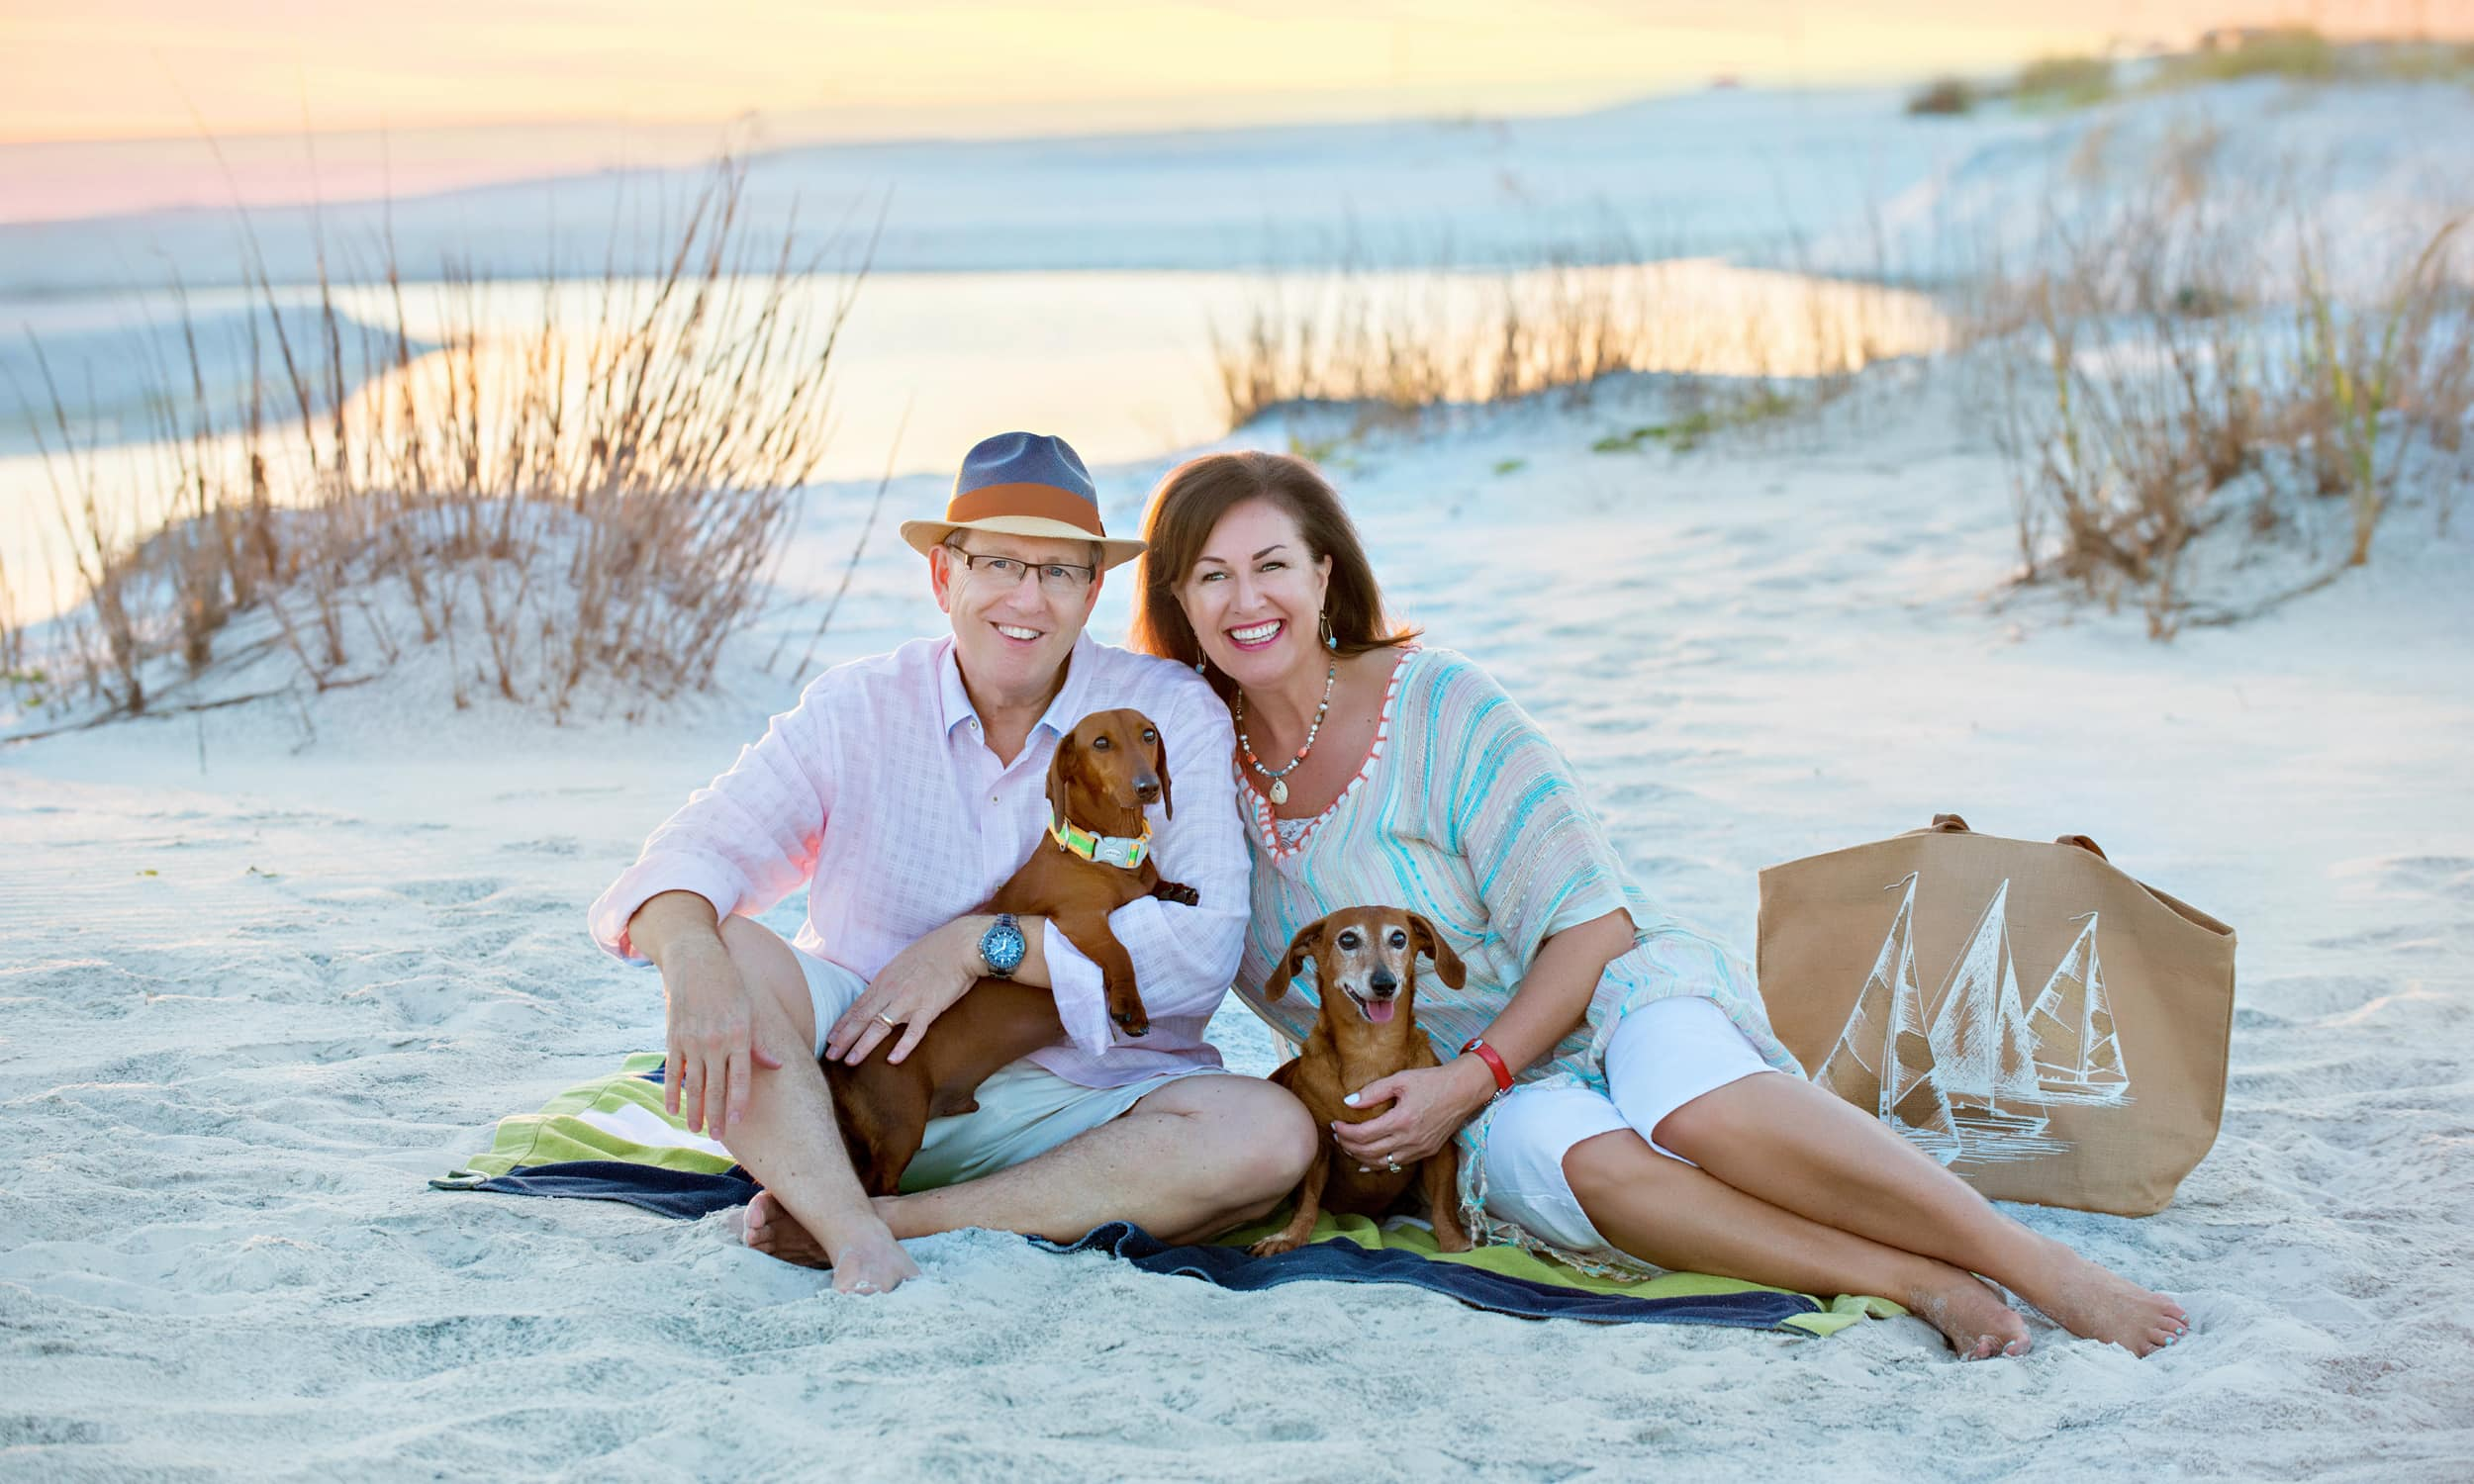 our happy clients and their adorable dachshunds